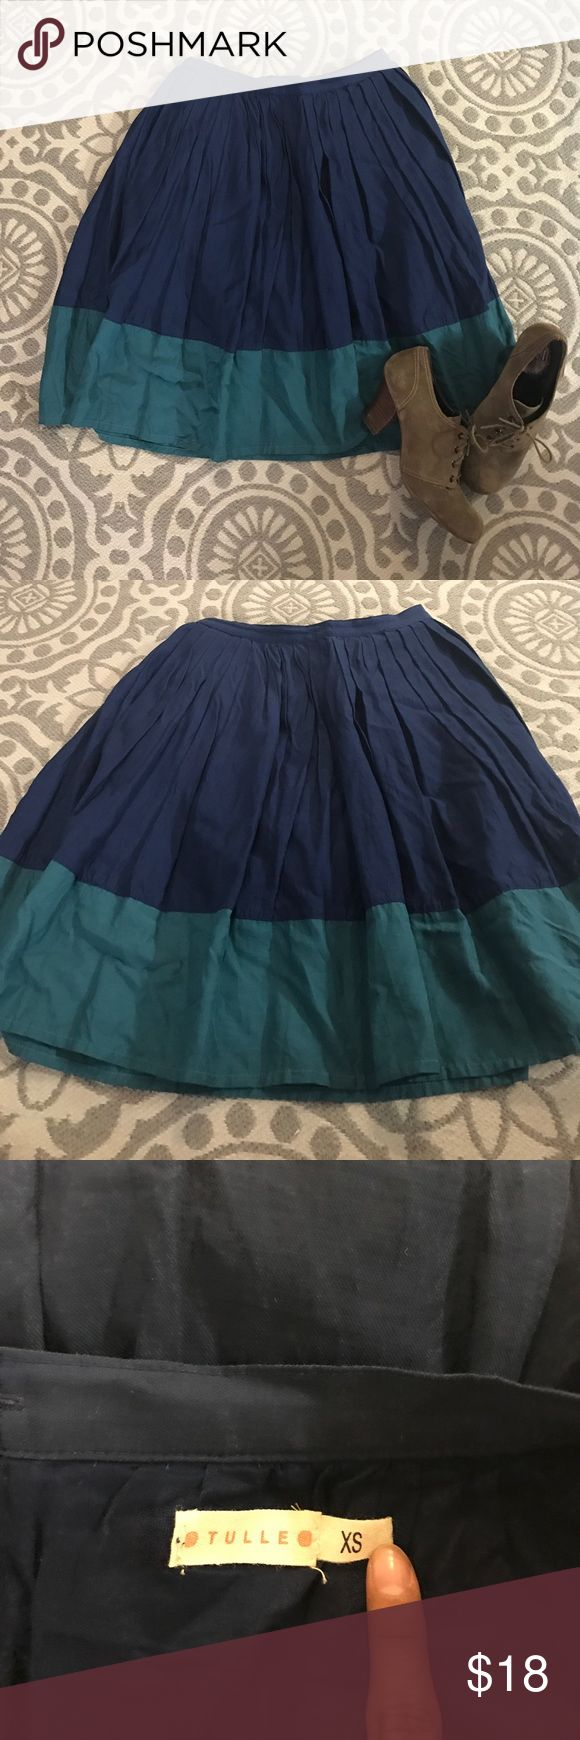 Navy pleated skirt with teal bottom trim